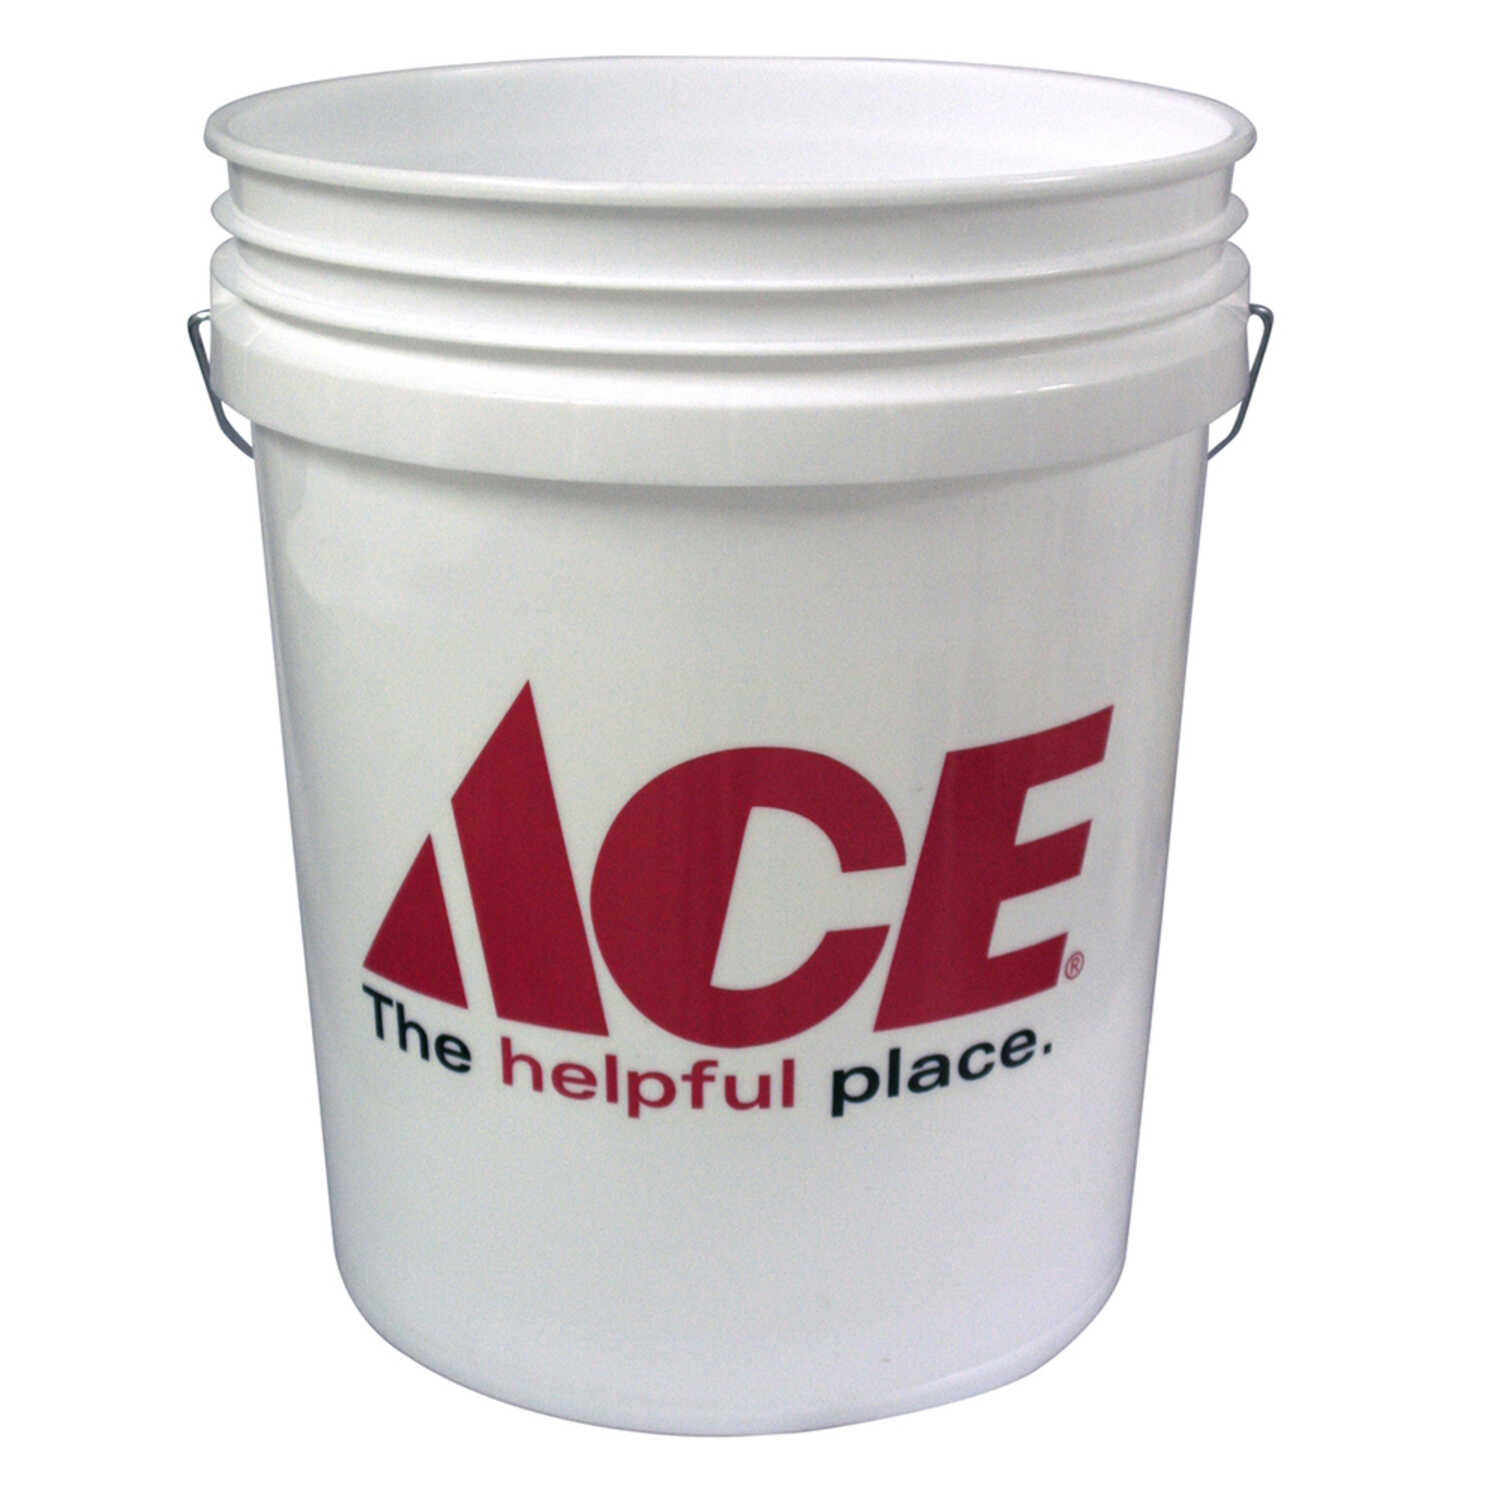 Plastic Bucket - Ace Hardware